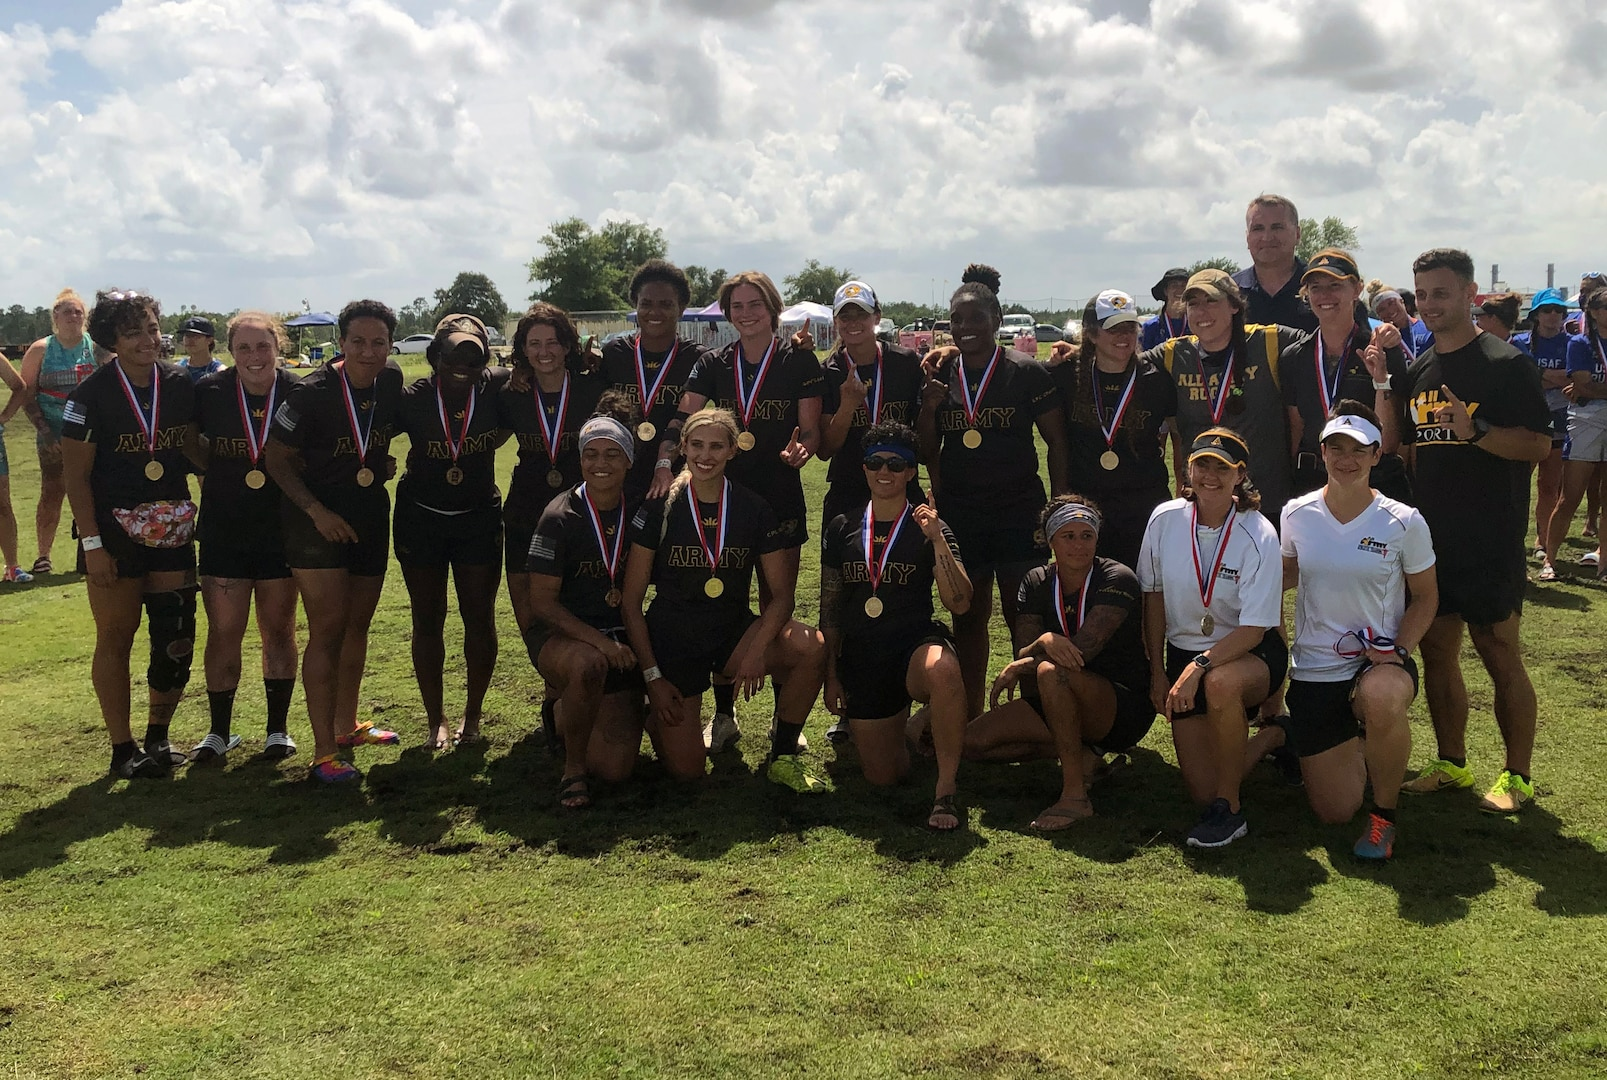 Army wins gold at the 2021 Armed Forces Rugby Championship held in conjunction with the 2021 Cape Fear Rugby Sevens Tournament, held from 24-28 June.  Service members from the Army, Marine Corps, Navy, Air Force (with Space Force personnel) and Coast Guard battle it out for gold.  (Department of Defense Photo, Released)